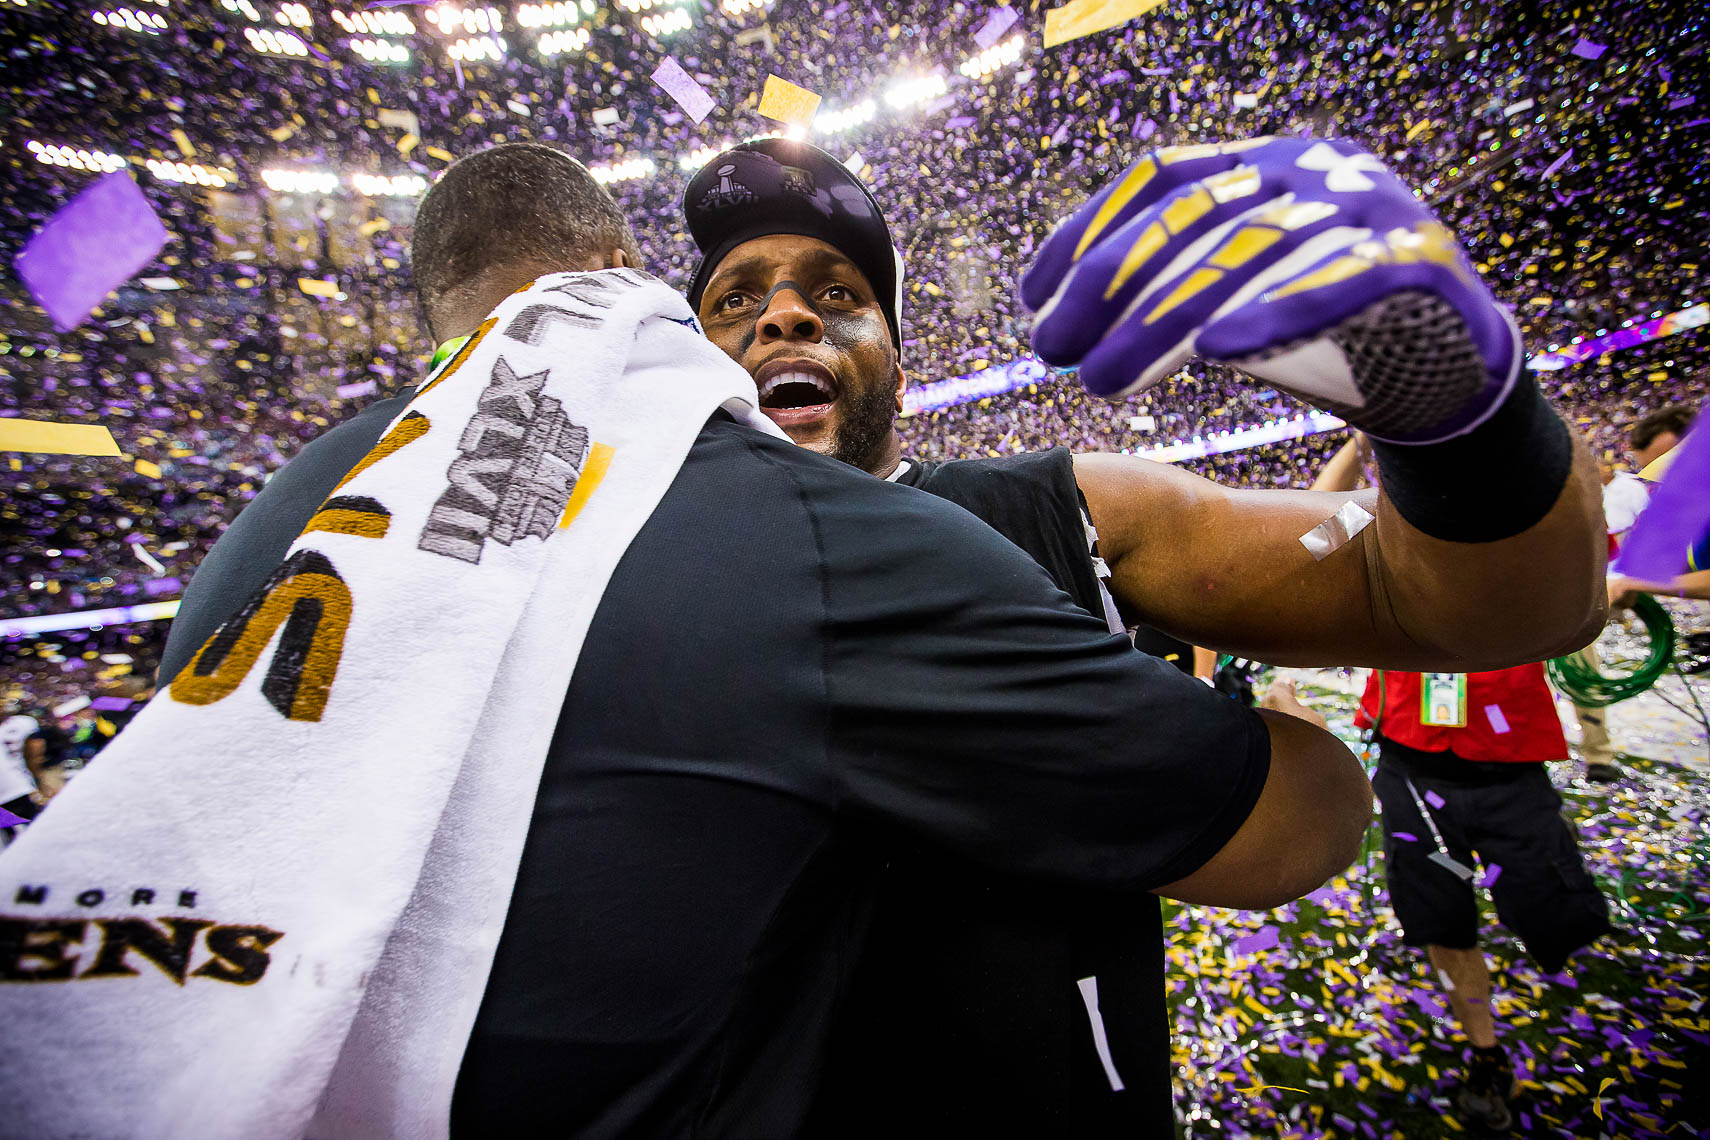 superbowl38  Best Super Bowl XLVII 47 photos between Baltimore Ravens and 49ers Harbaugh Bowl Ray Lewis Hall of Fame photos